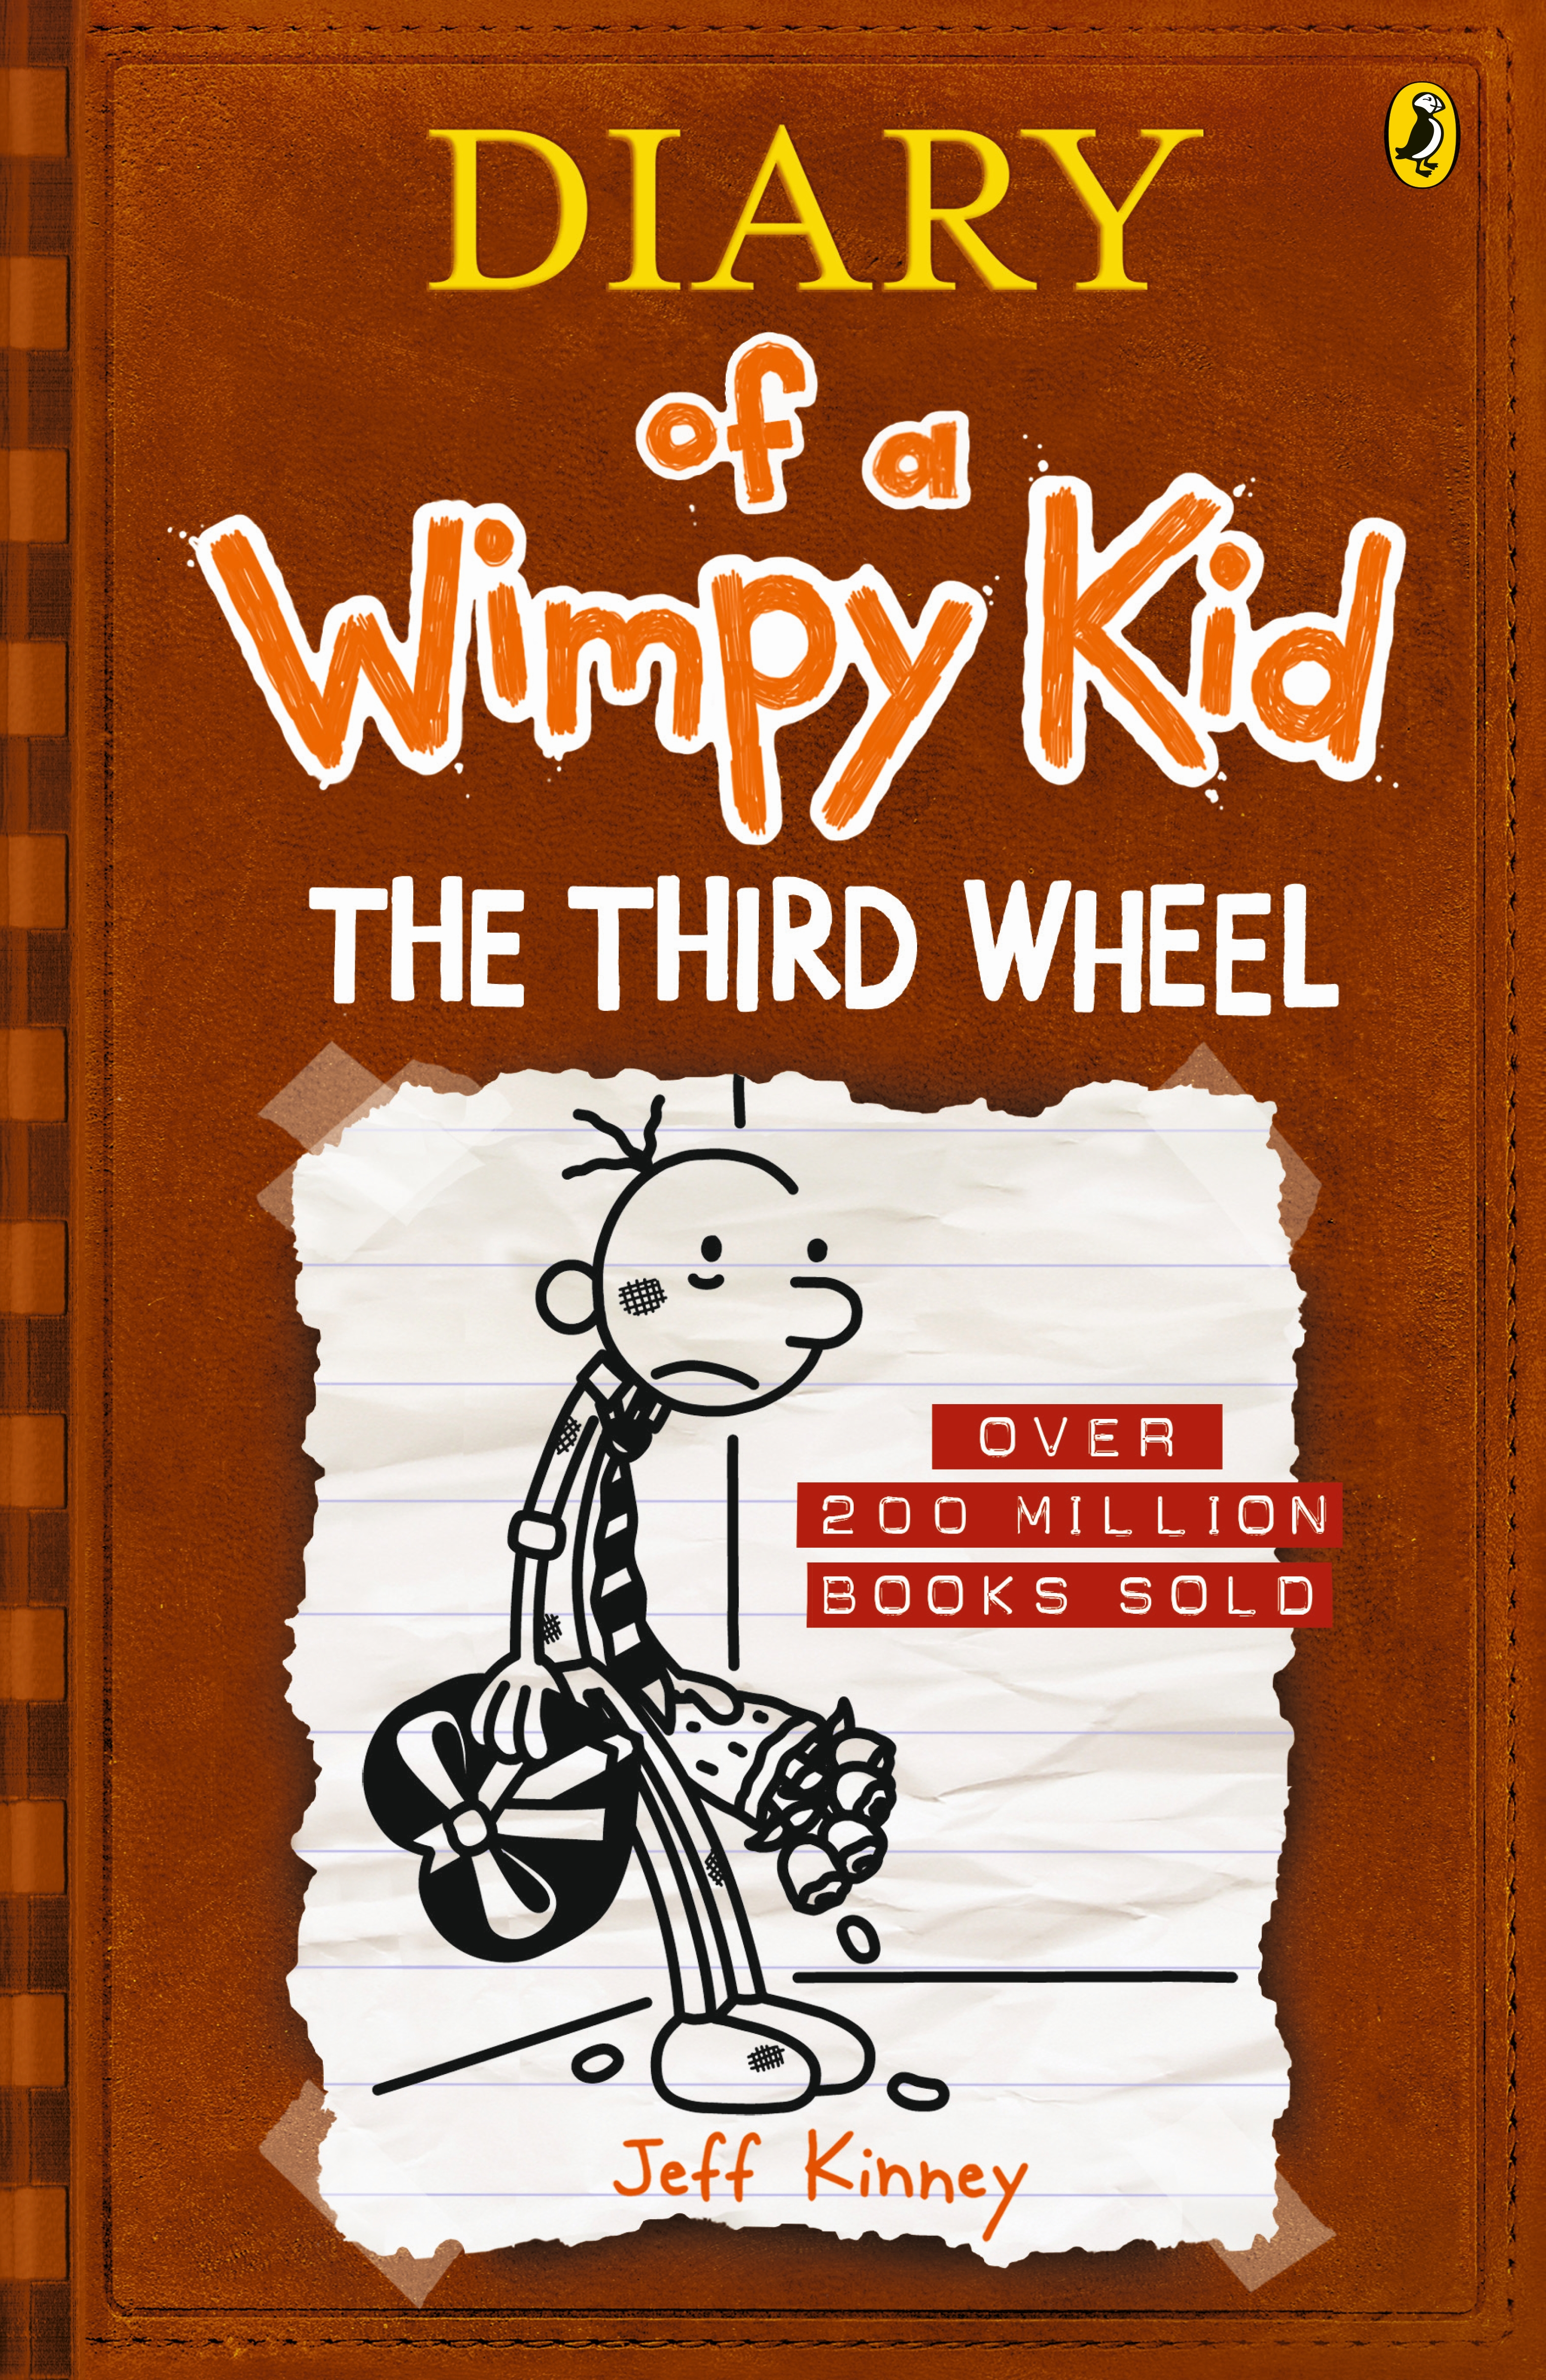 The third wheel diary of a wimpy kid bk7 by jeff kinney penguin hi res cover the third wheel diary of a wimpy kid solutioingenieria Gallery